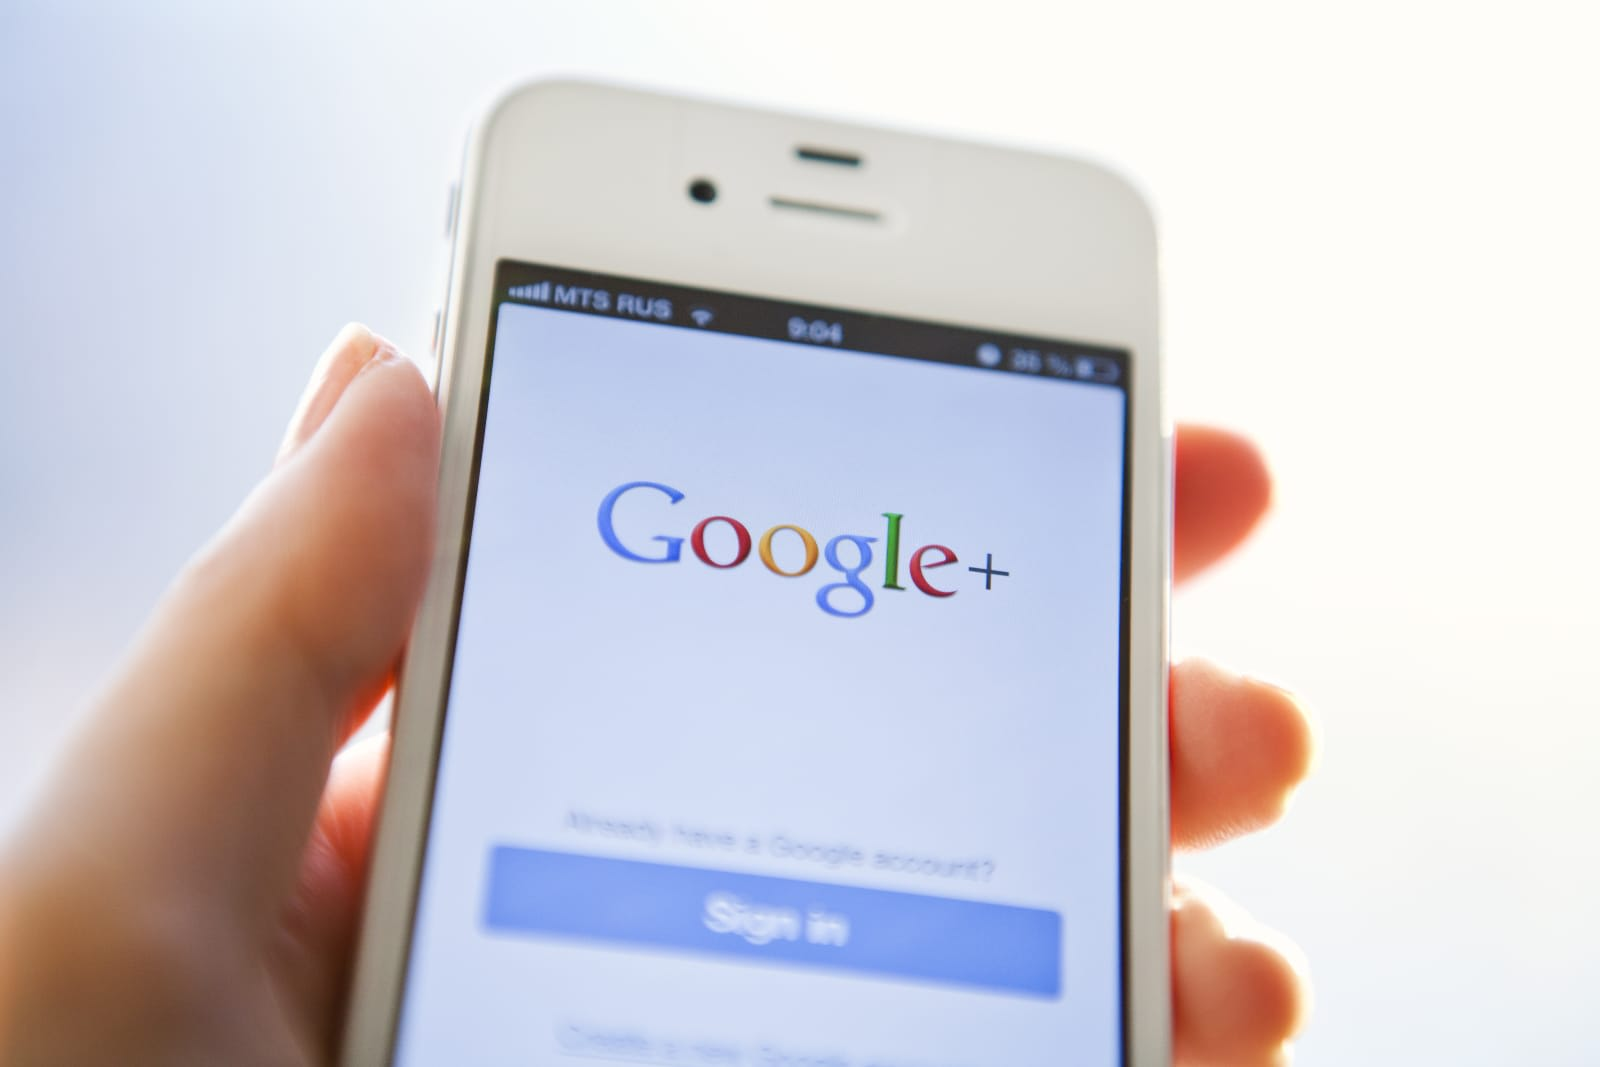 Google's quick-loading webpages are getting a better name